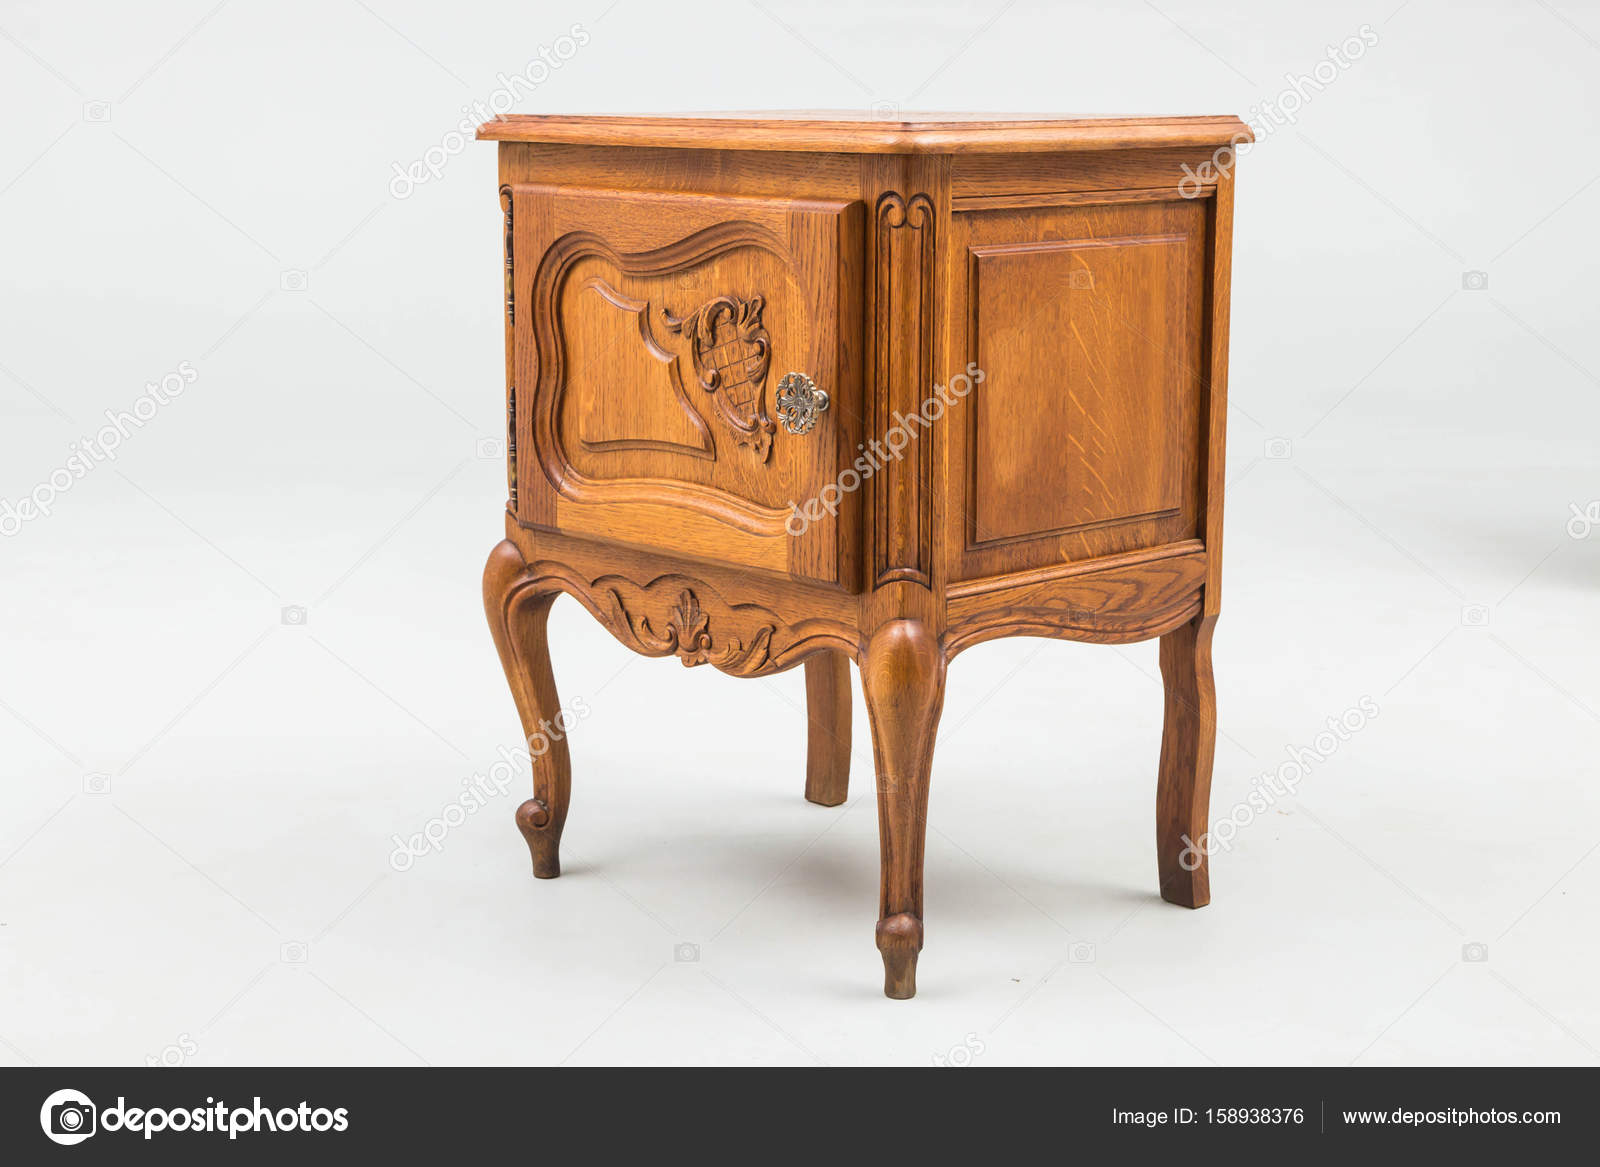 Commodes Anciennes Bois Antique Commodes Photographie Jbgroup 158938376